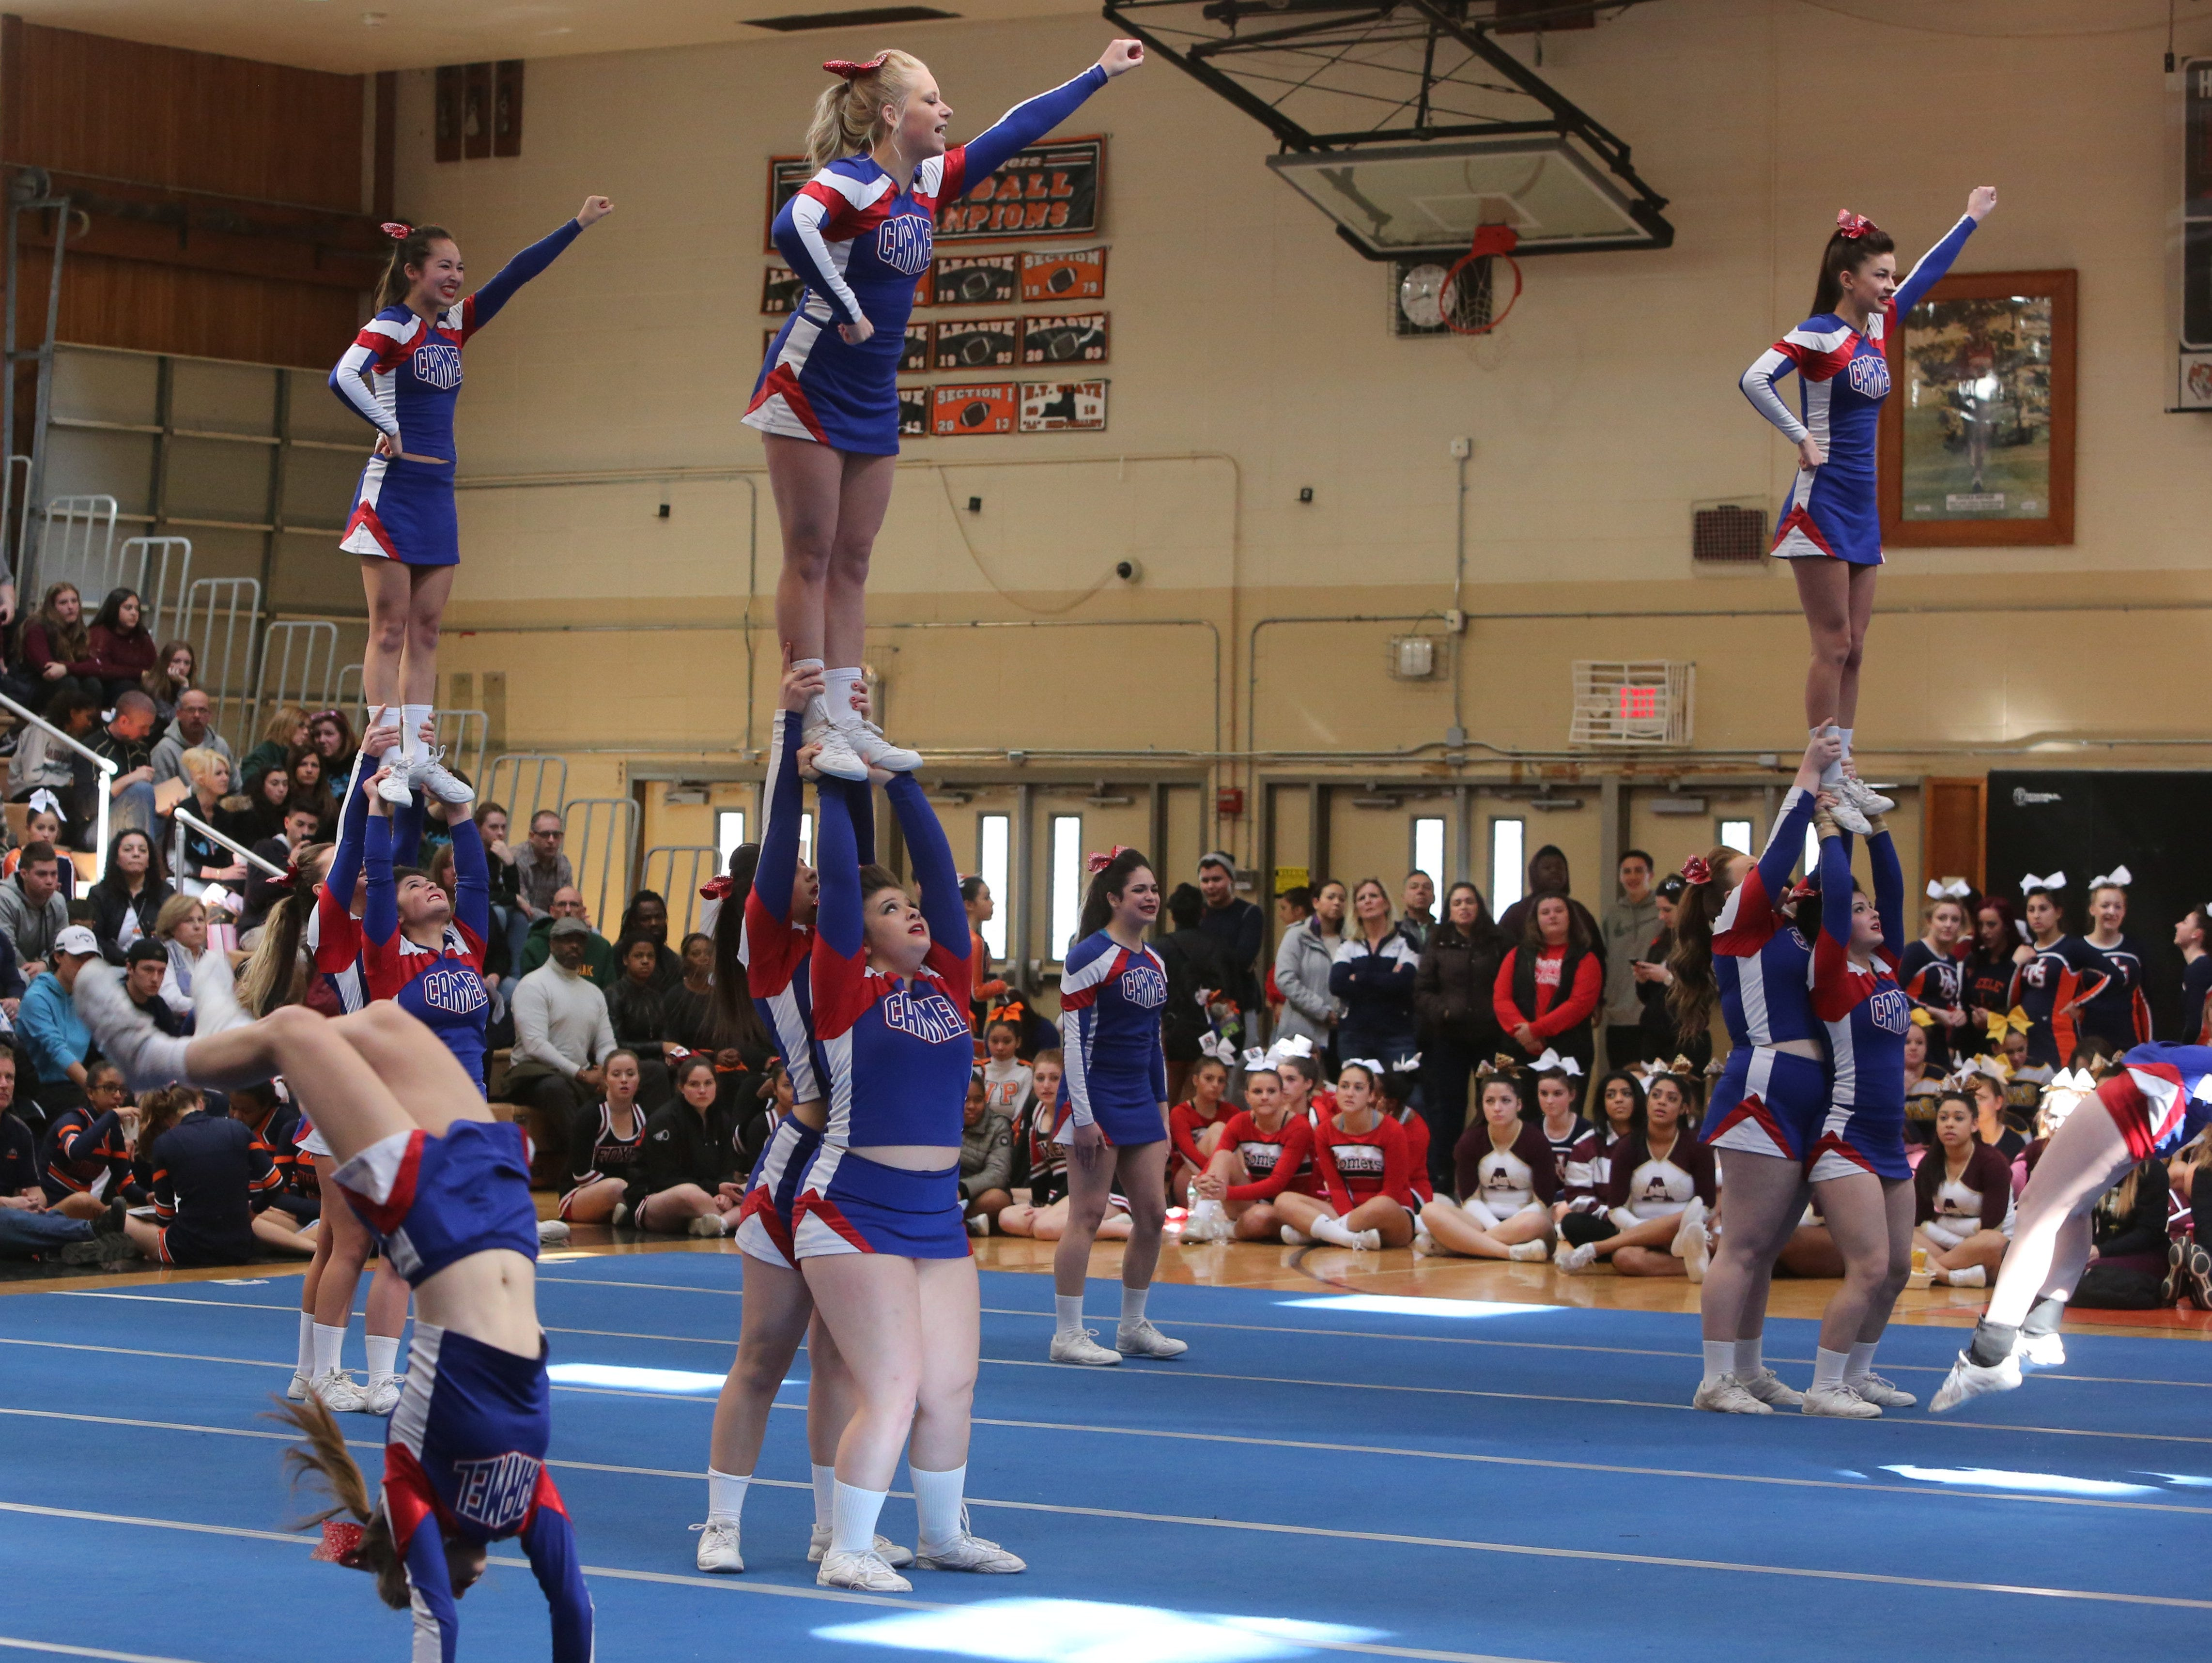 Carmel High School cheerleaders perform during the Section One Cheerleading Finals 2016 at White Plains High School, Feb. 27, 2016.